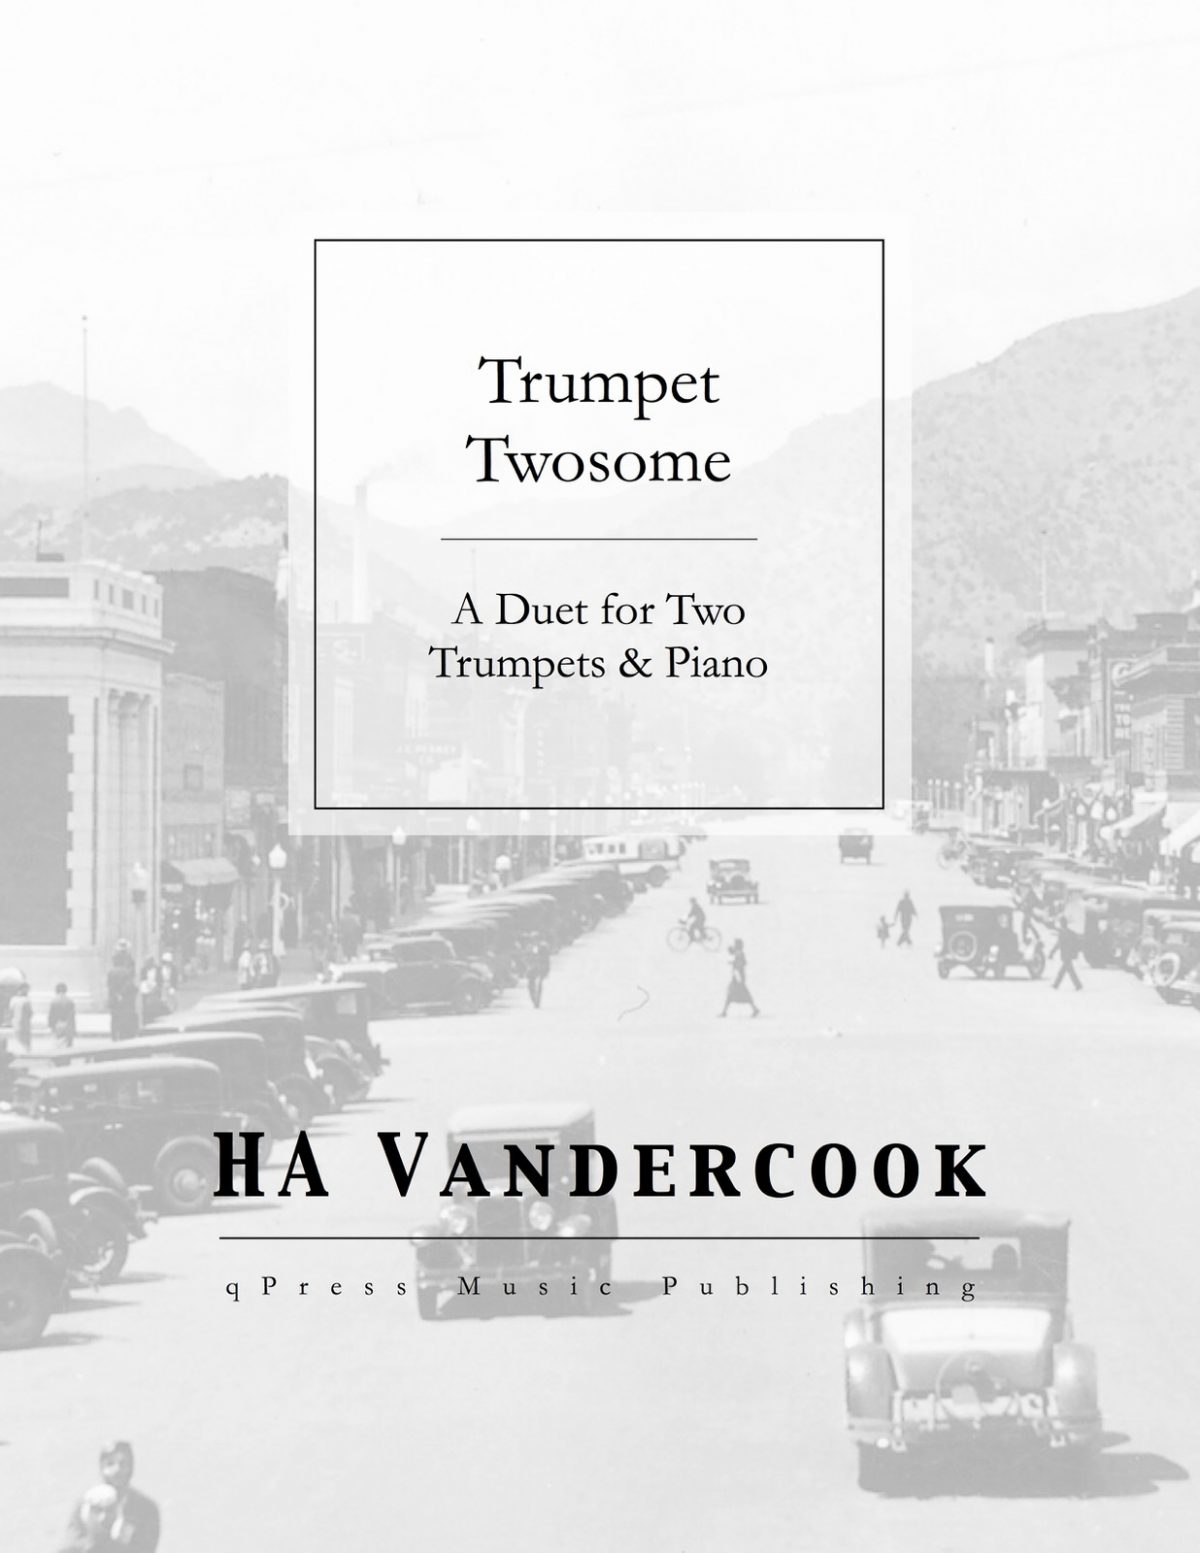 Vandercook, Trumpet Twosome Duet (2 trumpets and piano)-p01